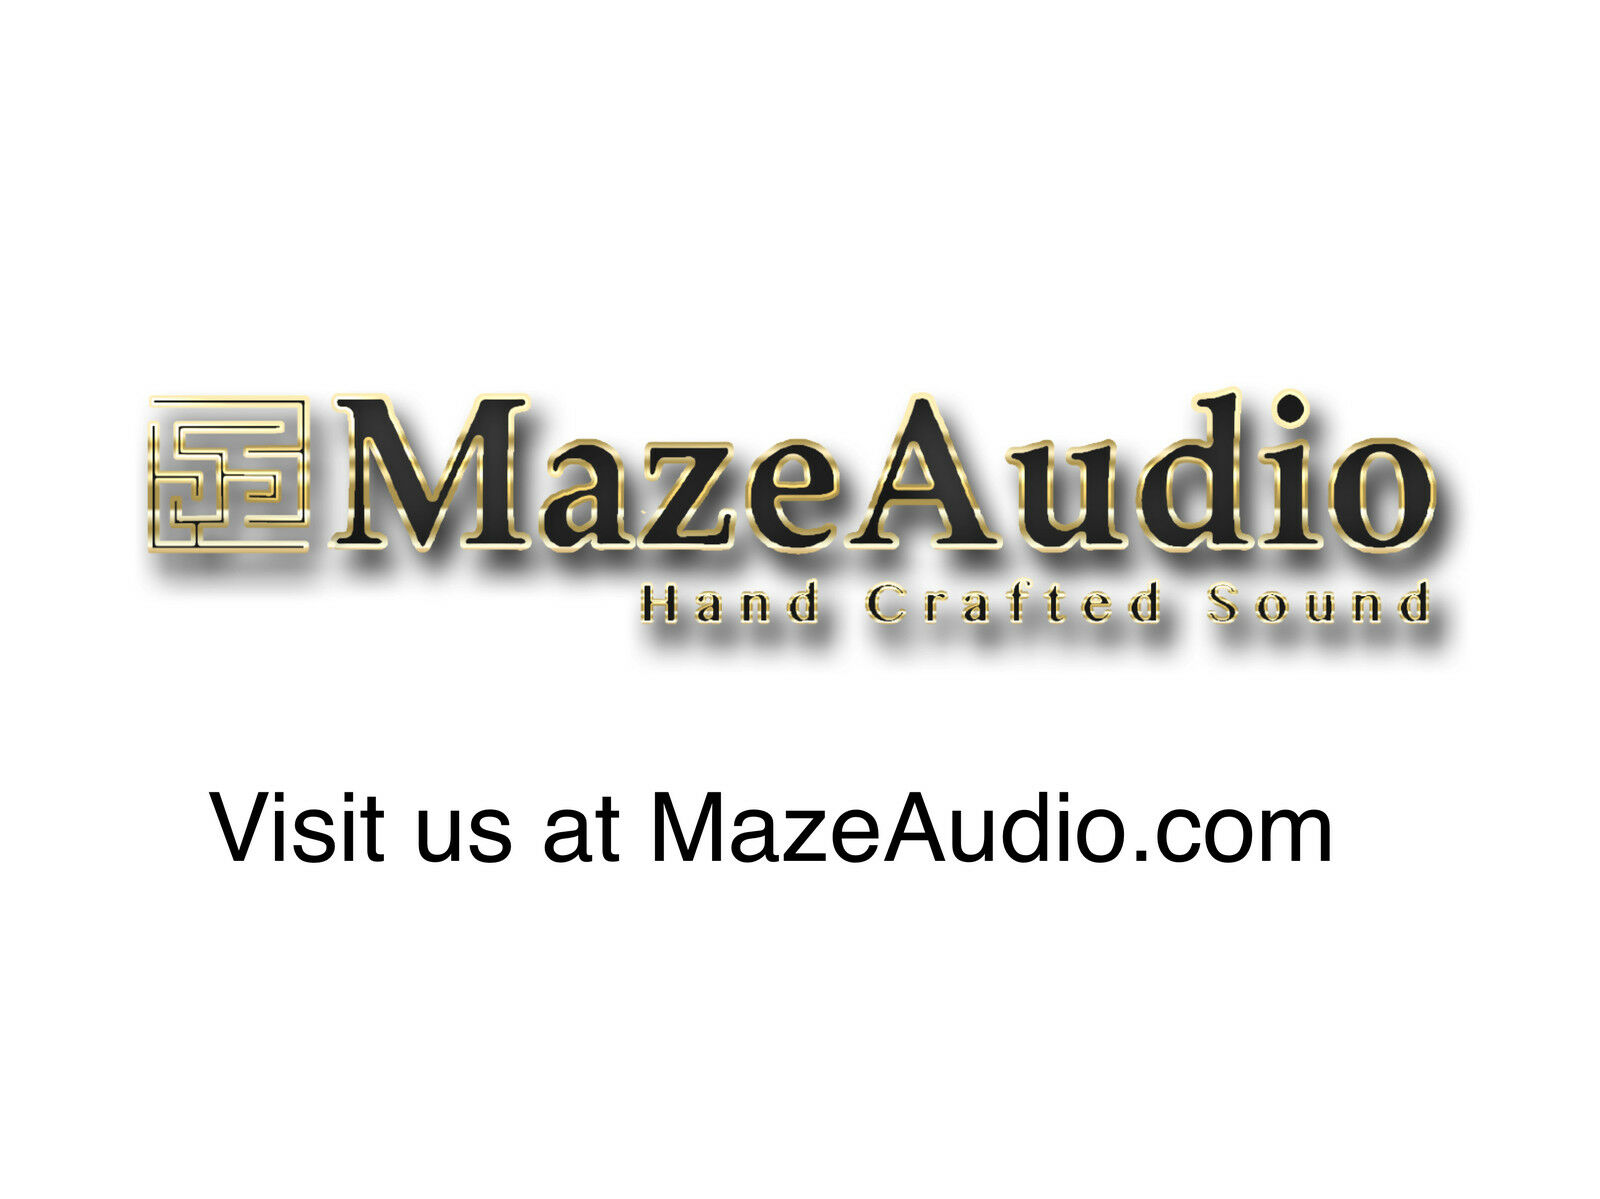 Maze Audio - Hand Crafted Sound